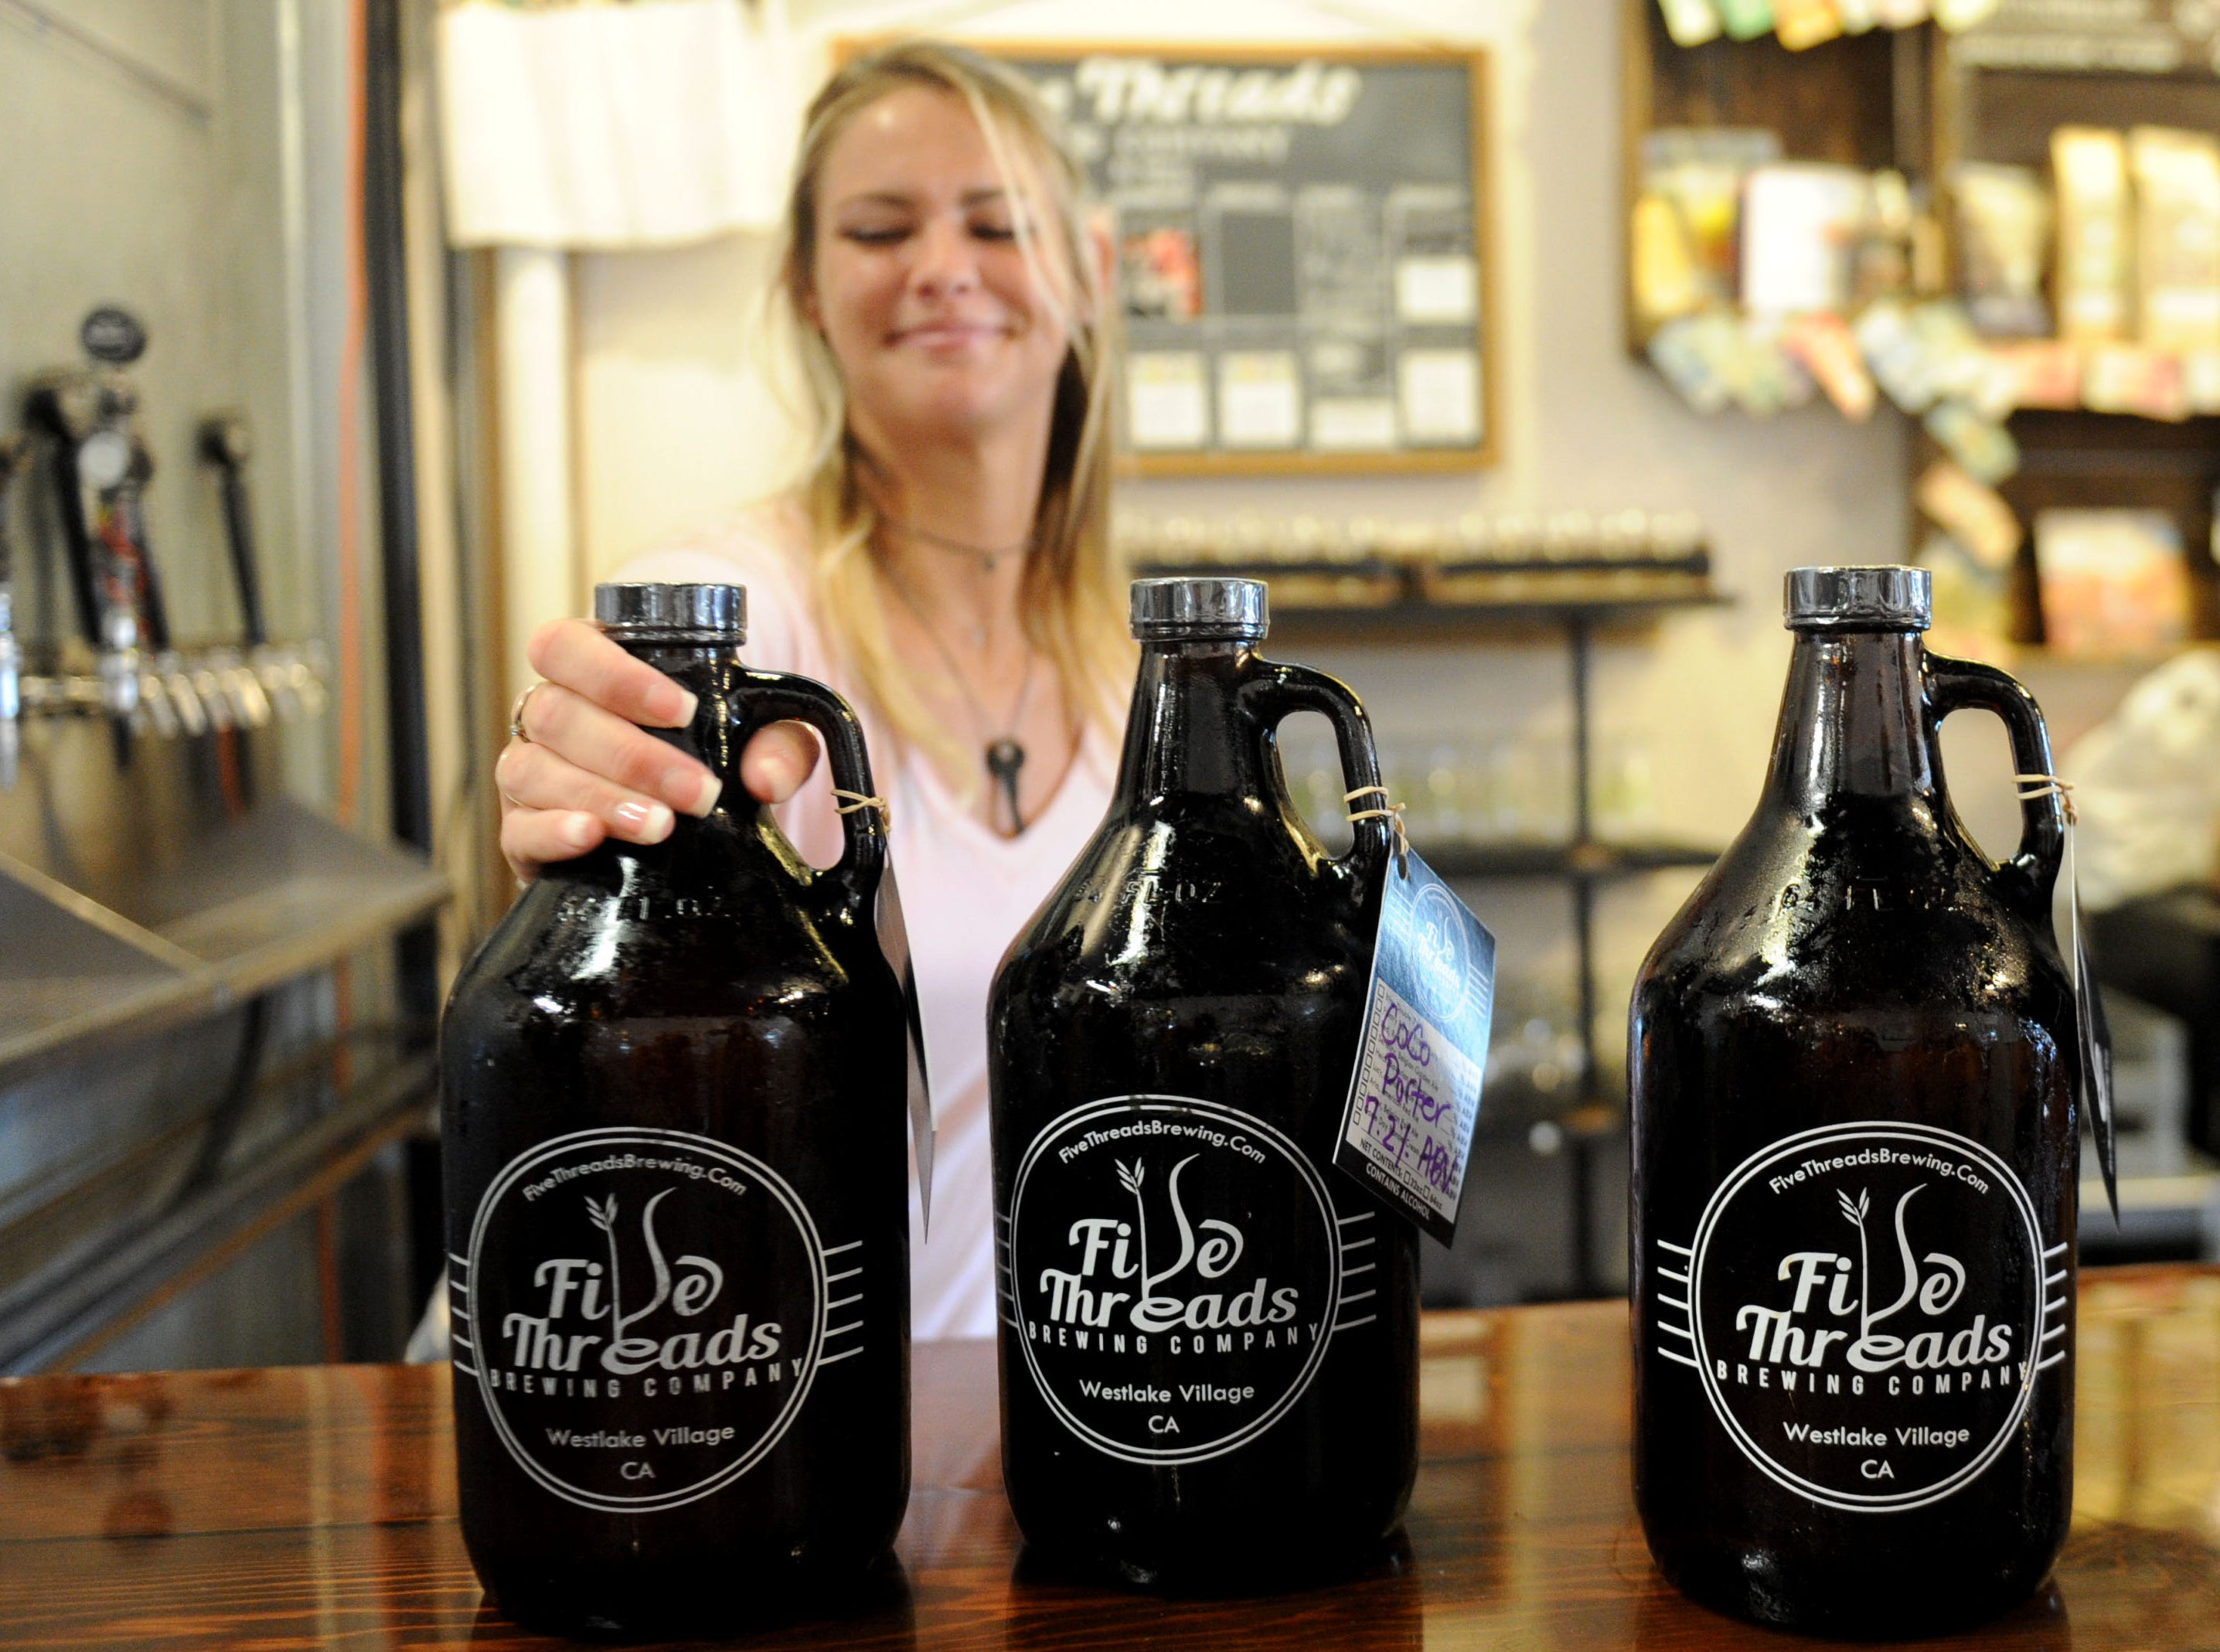 At Five Threads Brewing Company in Westlake Village Brynn Gompf, an executive assistant, finishes filling a 64-ounce growler with beer.